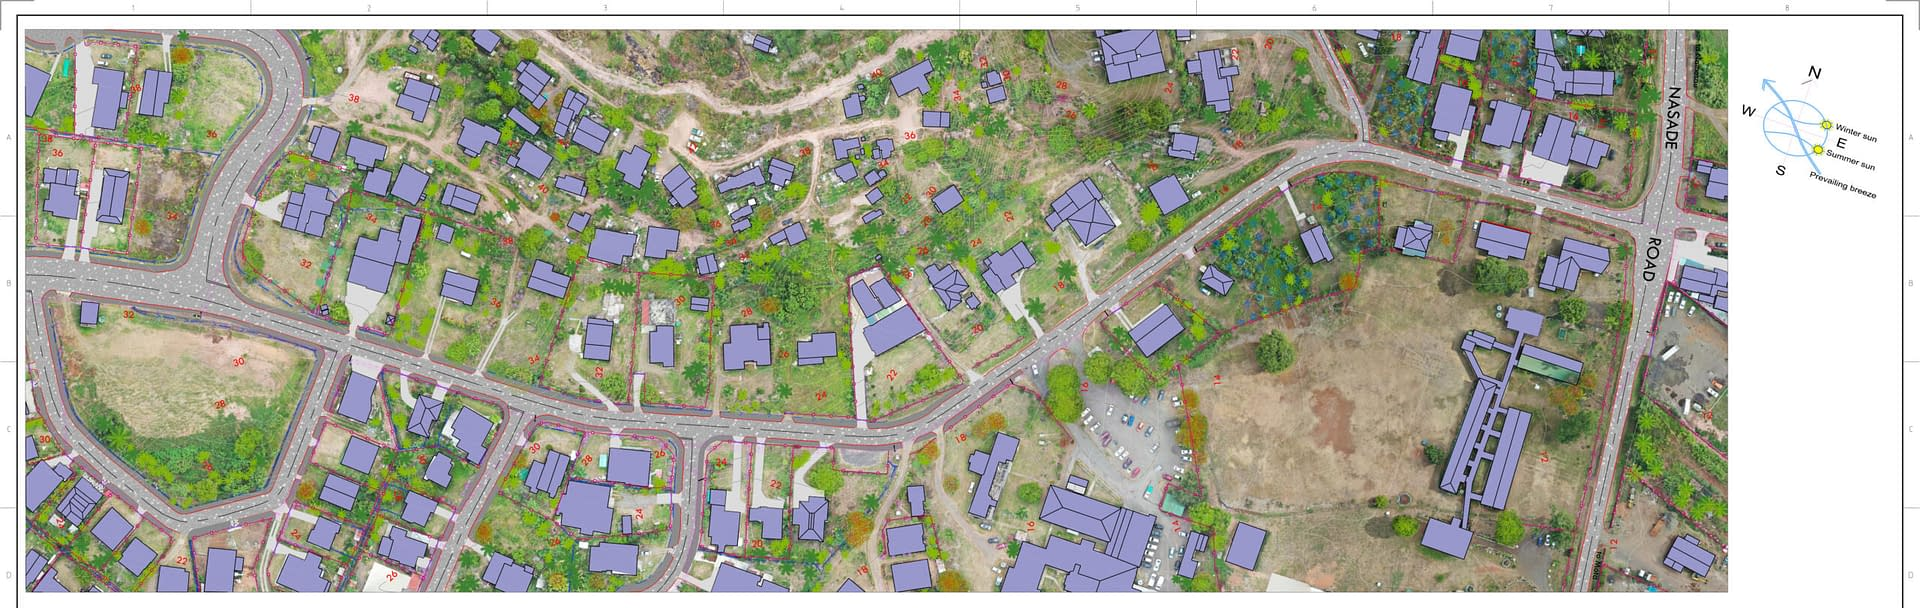 KP Image Overlay Aerial Topographic Survey